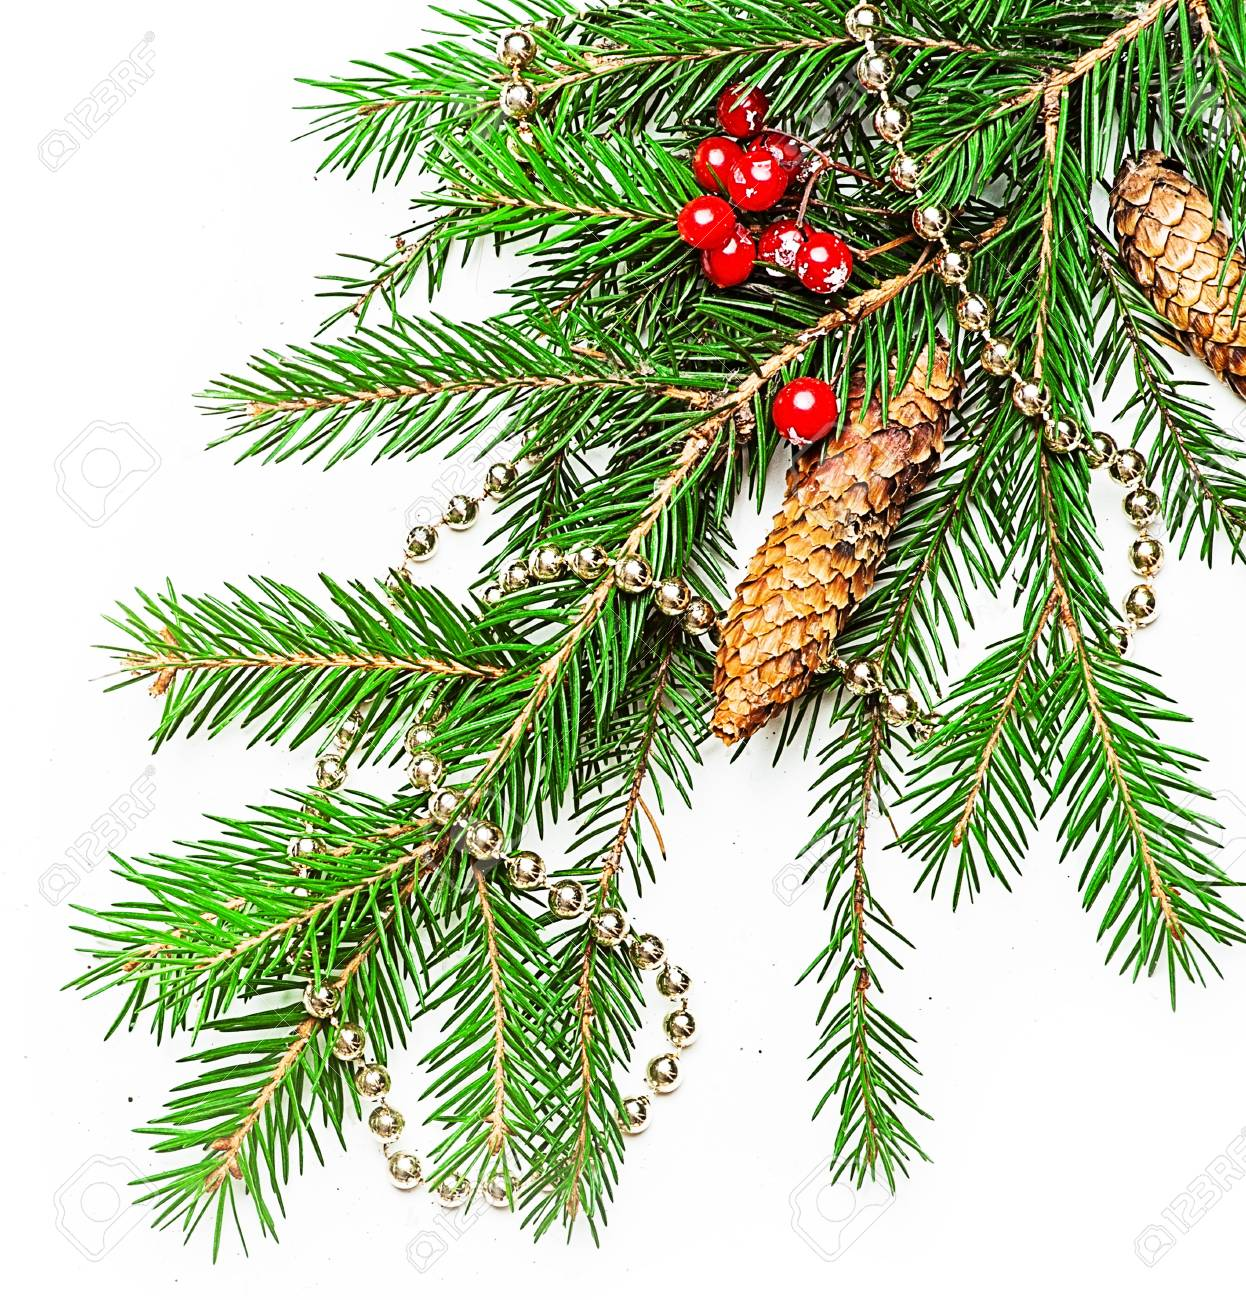 Christmas Decorations border  - beads; berry, con on fir tree branch Stock Photo - 16392195